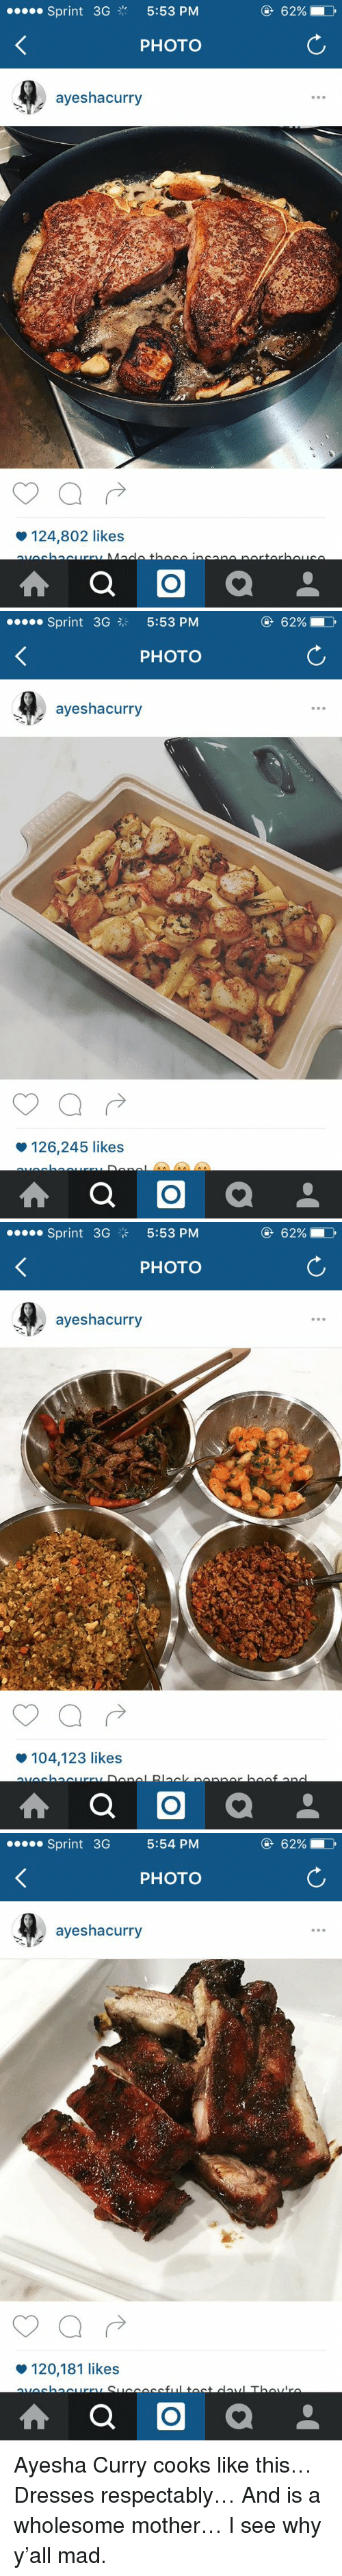 Ayesha Curry: Sprint 3G  5:53 PM  PHOTO  ayeshacurry  124,802 likes  A a O  a  62% D   Sprint 3G 3 5:53 PM  PHOTO  ayeshacurry  126,245 likes  A a O  a  62%   Sprint 3G  5:53 PM  PHOTO  ayeshacurry  104,123 likes  A a O  a  62%  D   Sprint 3G  5:54 PM  PHOTO  ayeshacurry  120,181 likes  A a O  a Ayesha Curry cooks like this… Dresses respectably… And is a wholesome mother… I see why y'all mad.